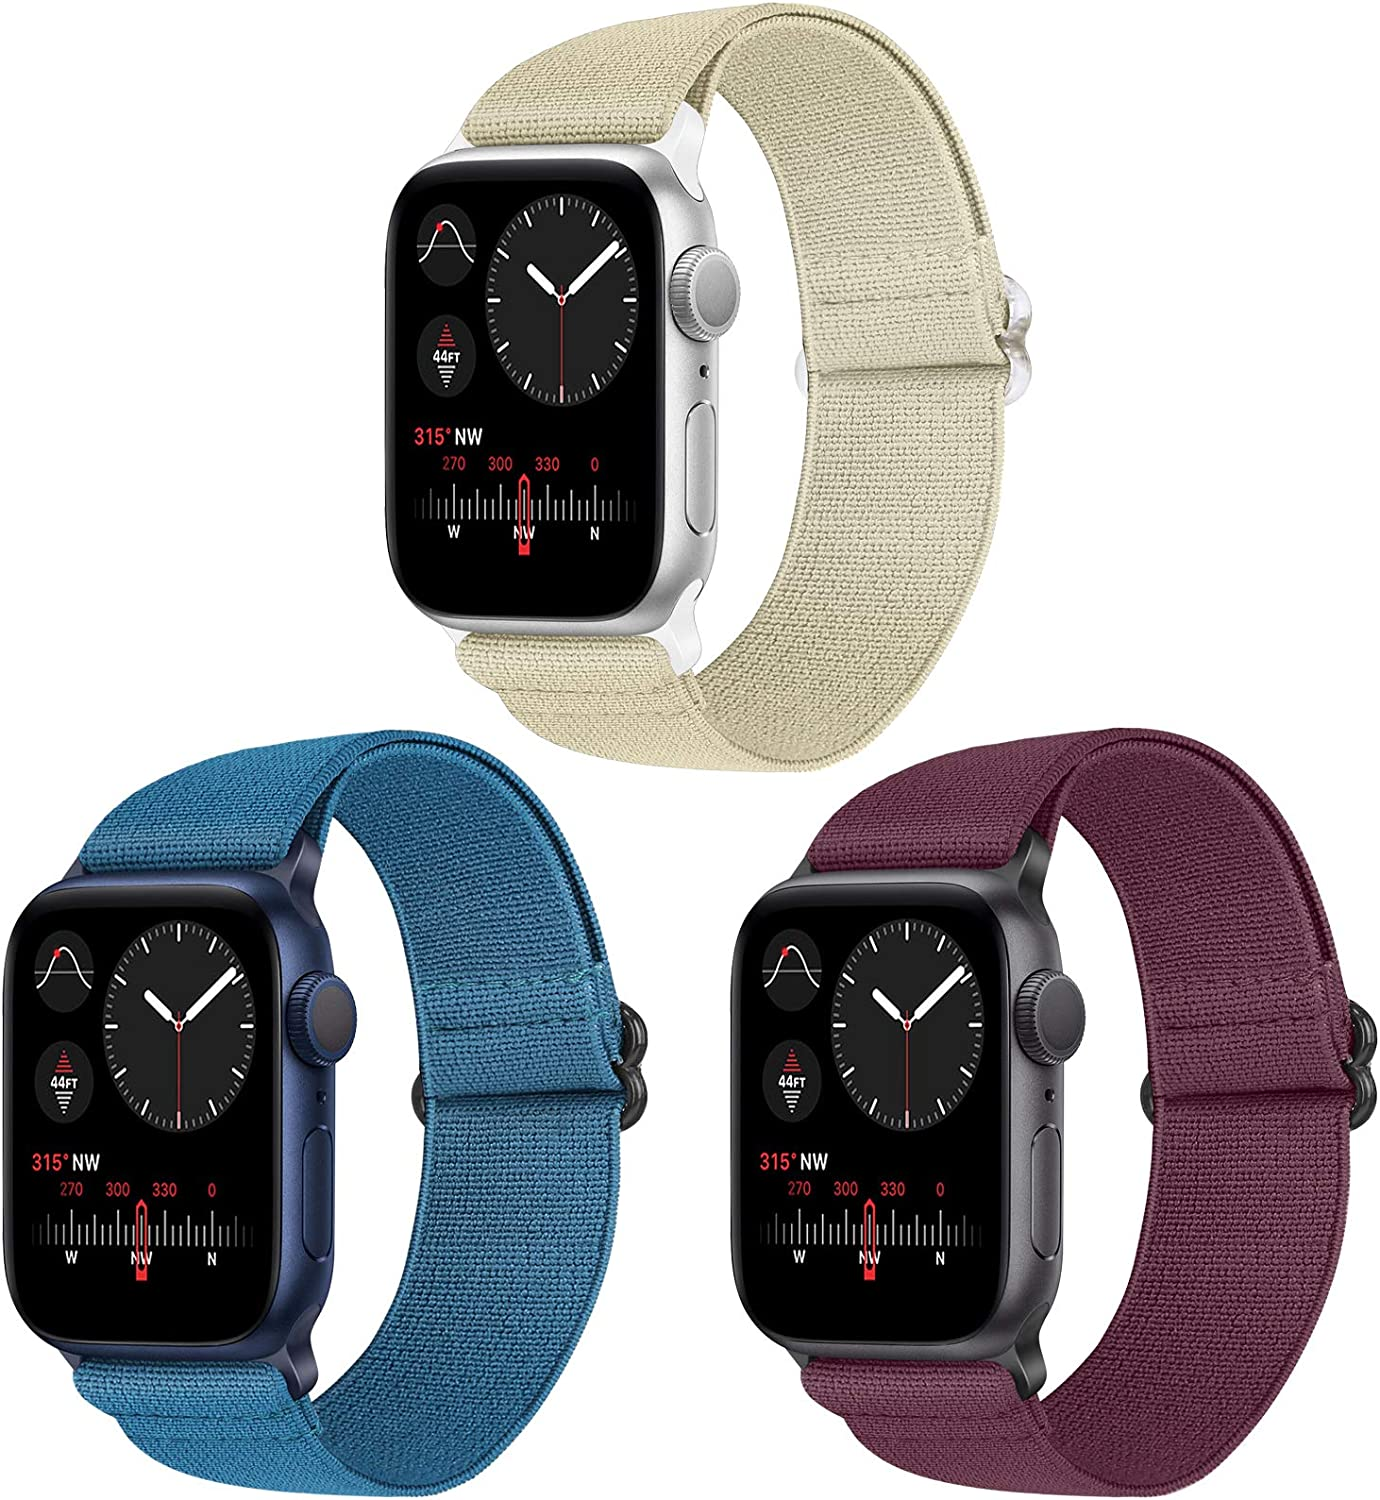 Vodtian Nylon Loop Elastic Watch Band Compatible with Apple Watch 42mm 44mm, Women Men Adjustable Replacement Sport Straps for iWatch Series 6/5/4/3/2/1/SE (Navy Blue+Wine Red+Camel, 42mm/44mm)